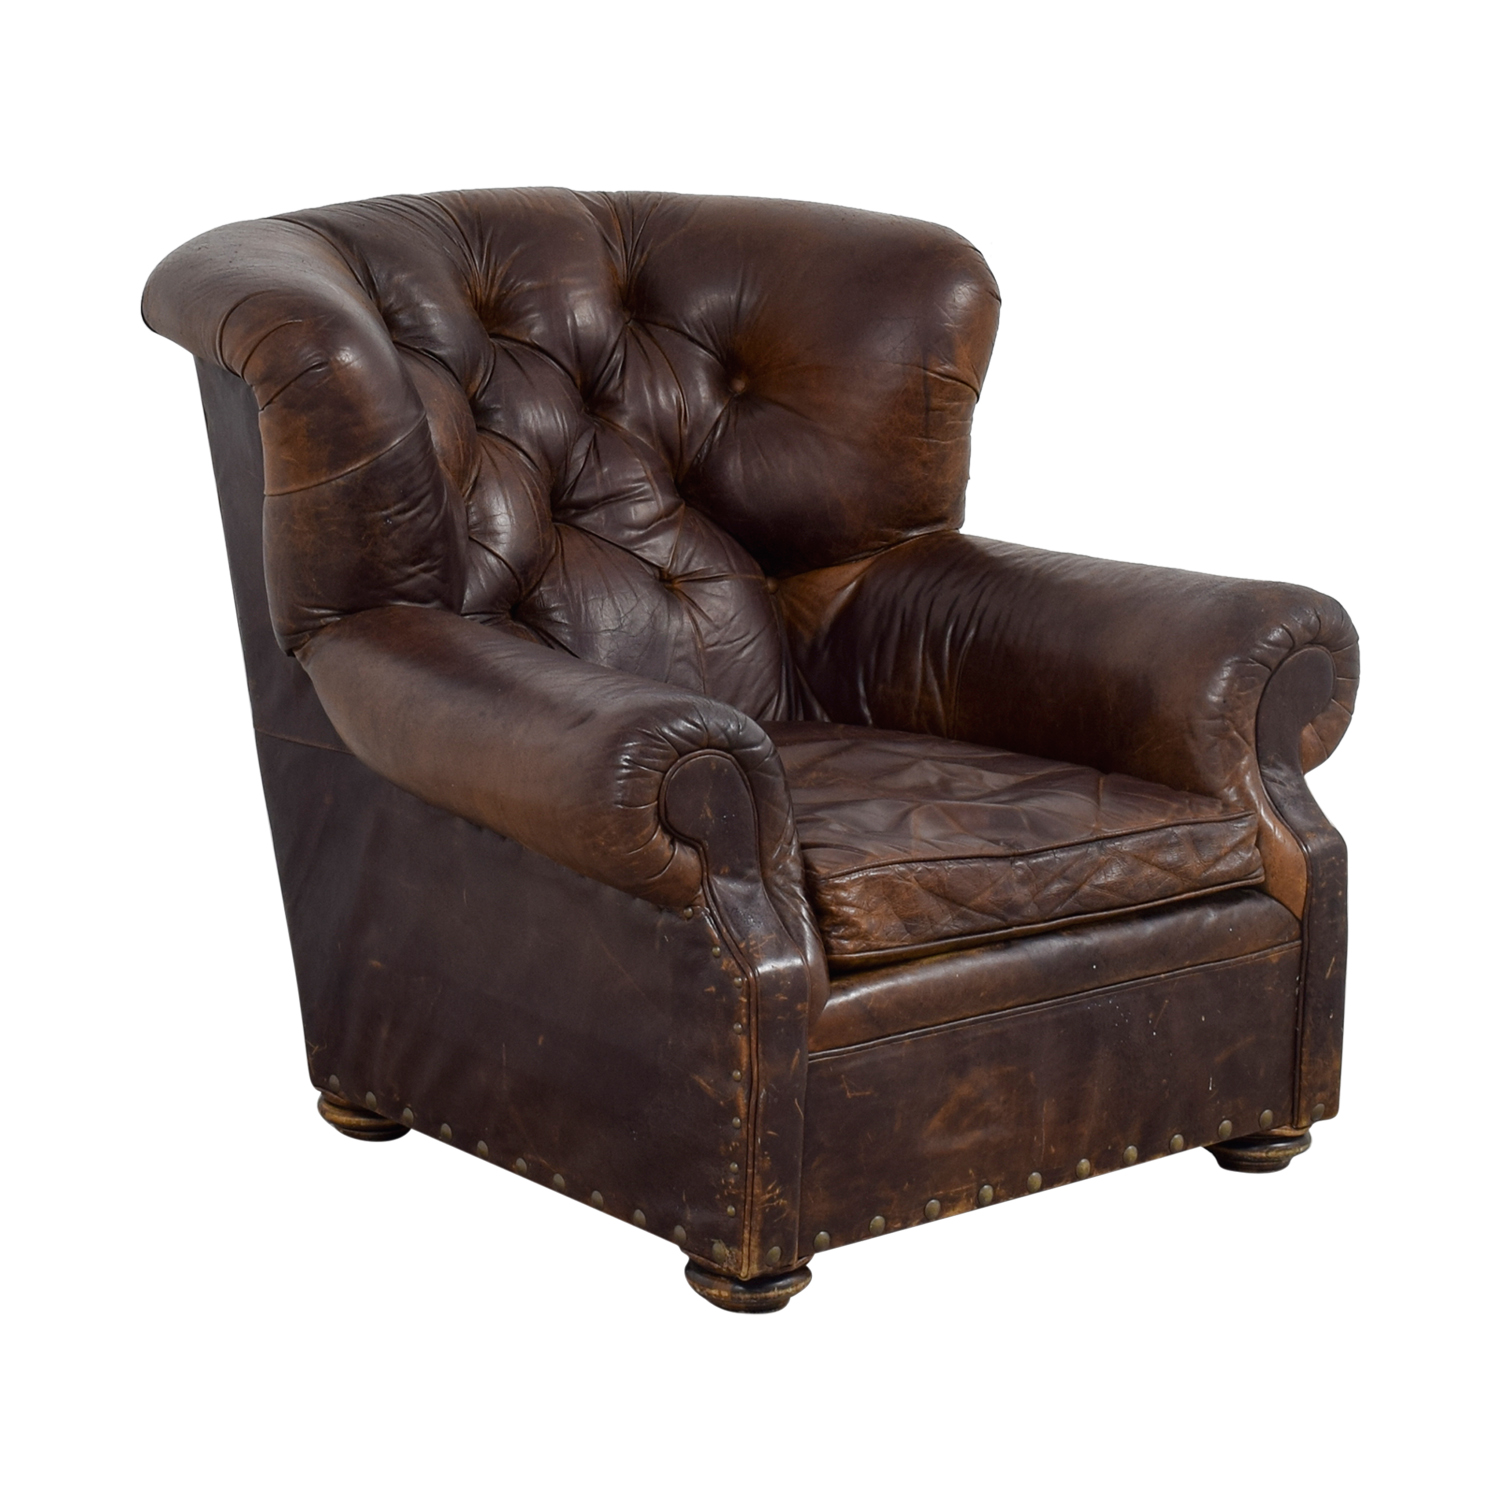 Accent Chairs Prices 74 Off Restoration Hardware Restoration Hardware Brown